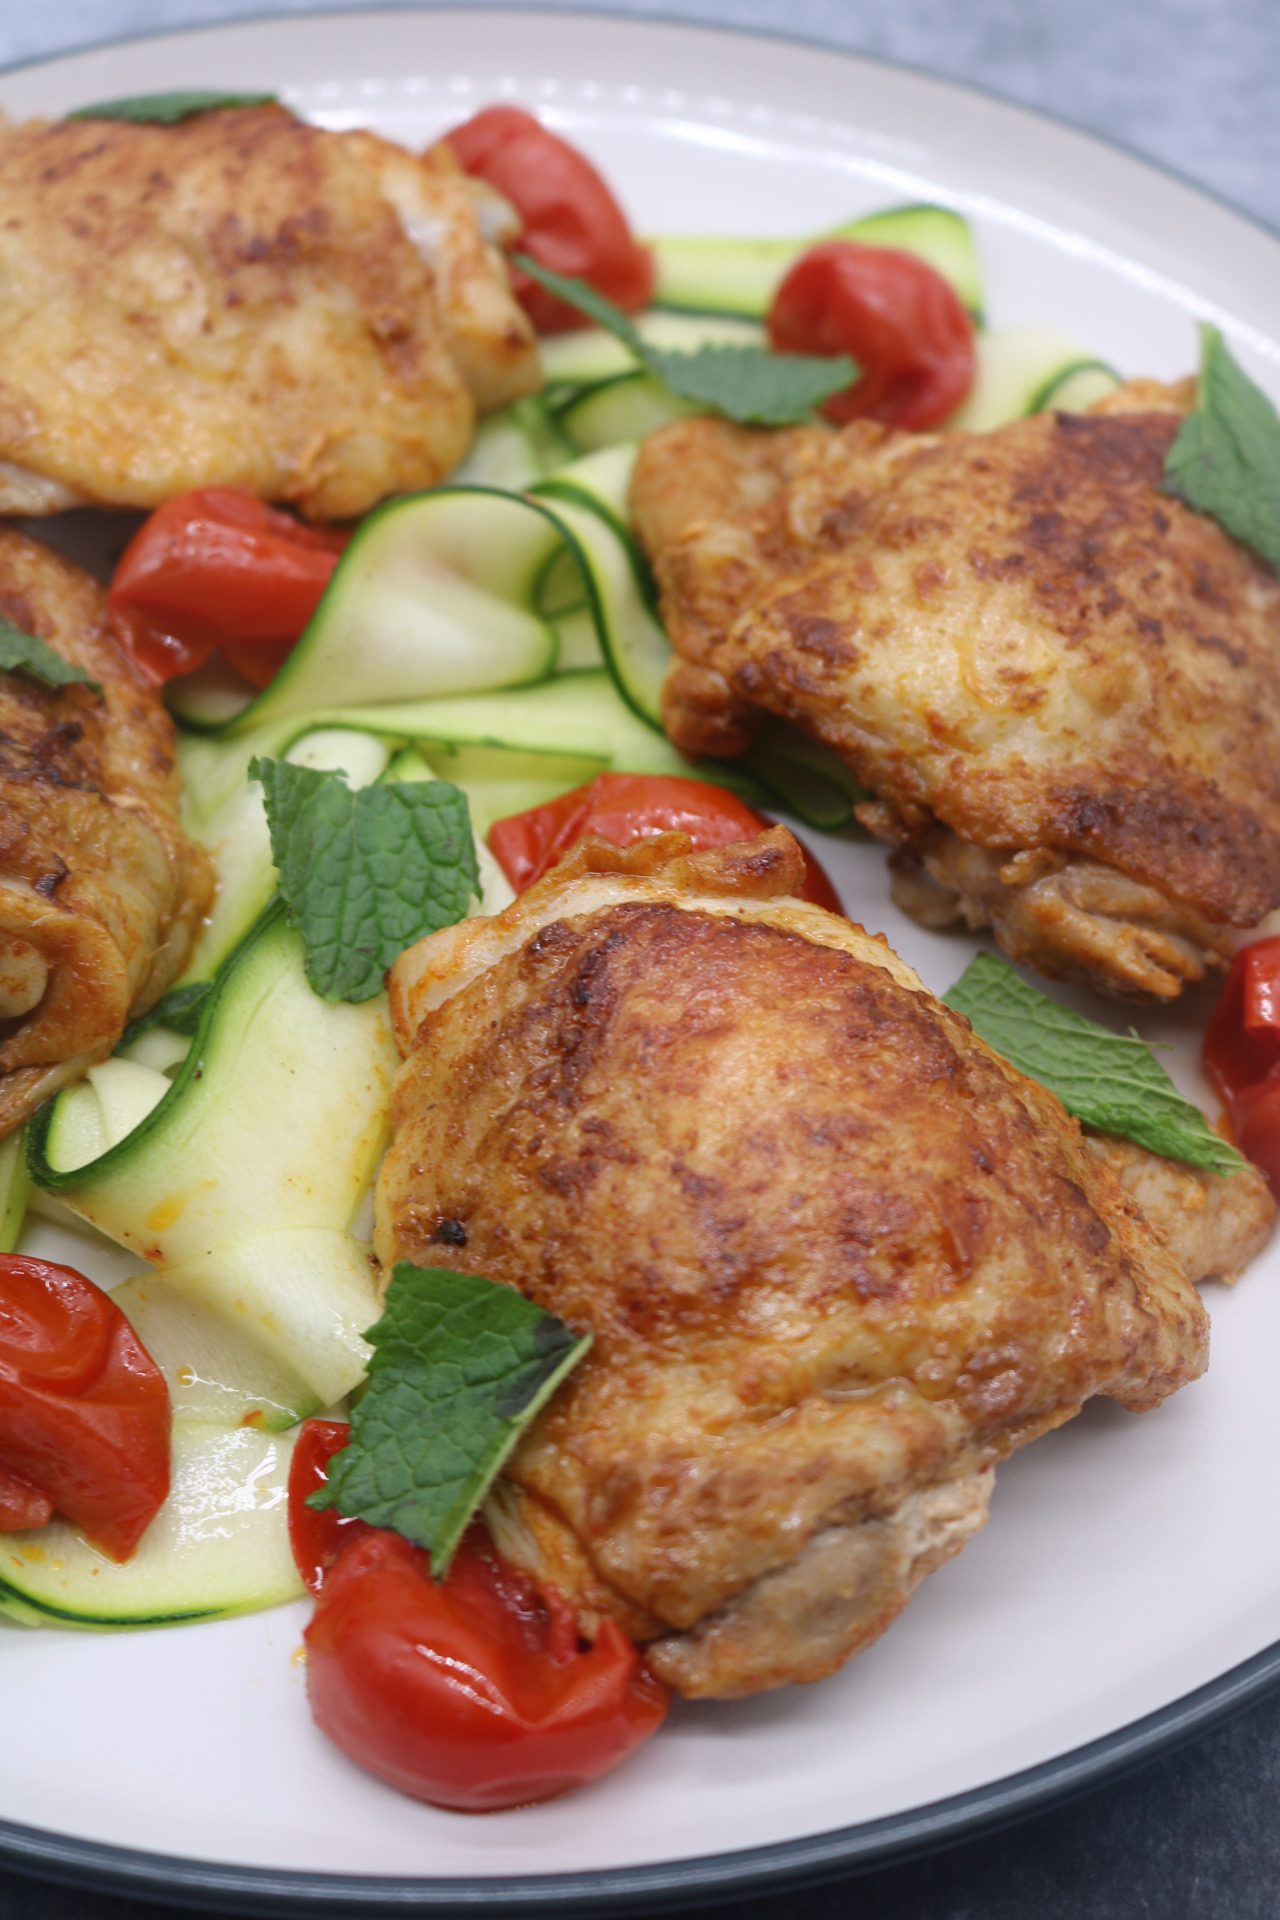 Paprika Chicken Thighs with Cherry Tomatoes and Courgette Ribbons, Paprika Chicken Thighs with Cherry Tomatoes and Courgette Ribbons